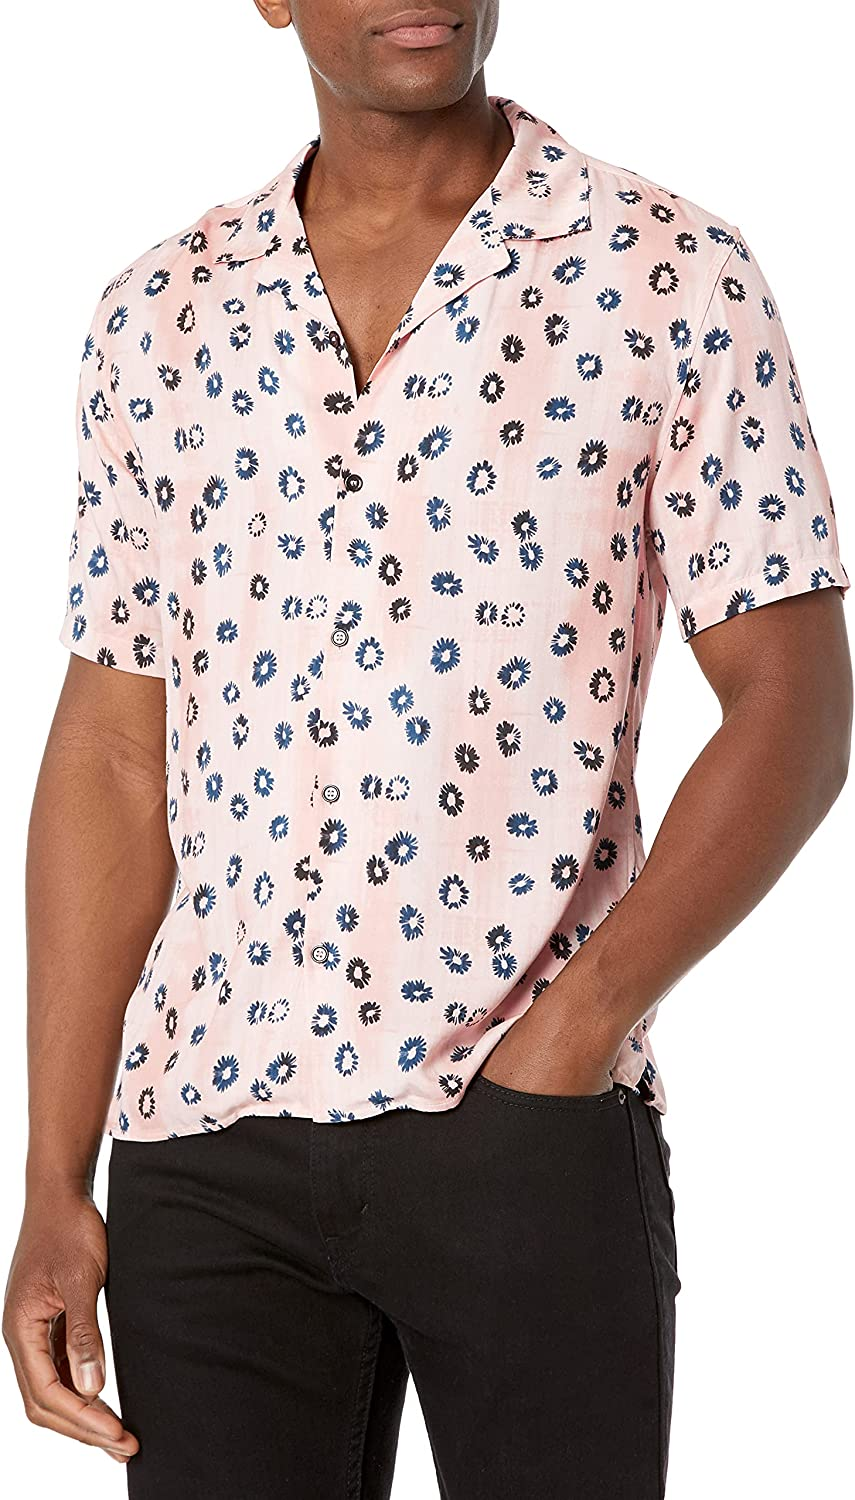 The Kooples Men's Short-Sleeved, Floral Printed Button-Down Shirt